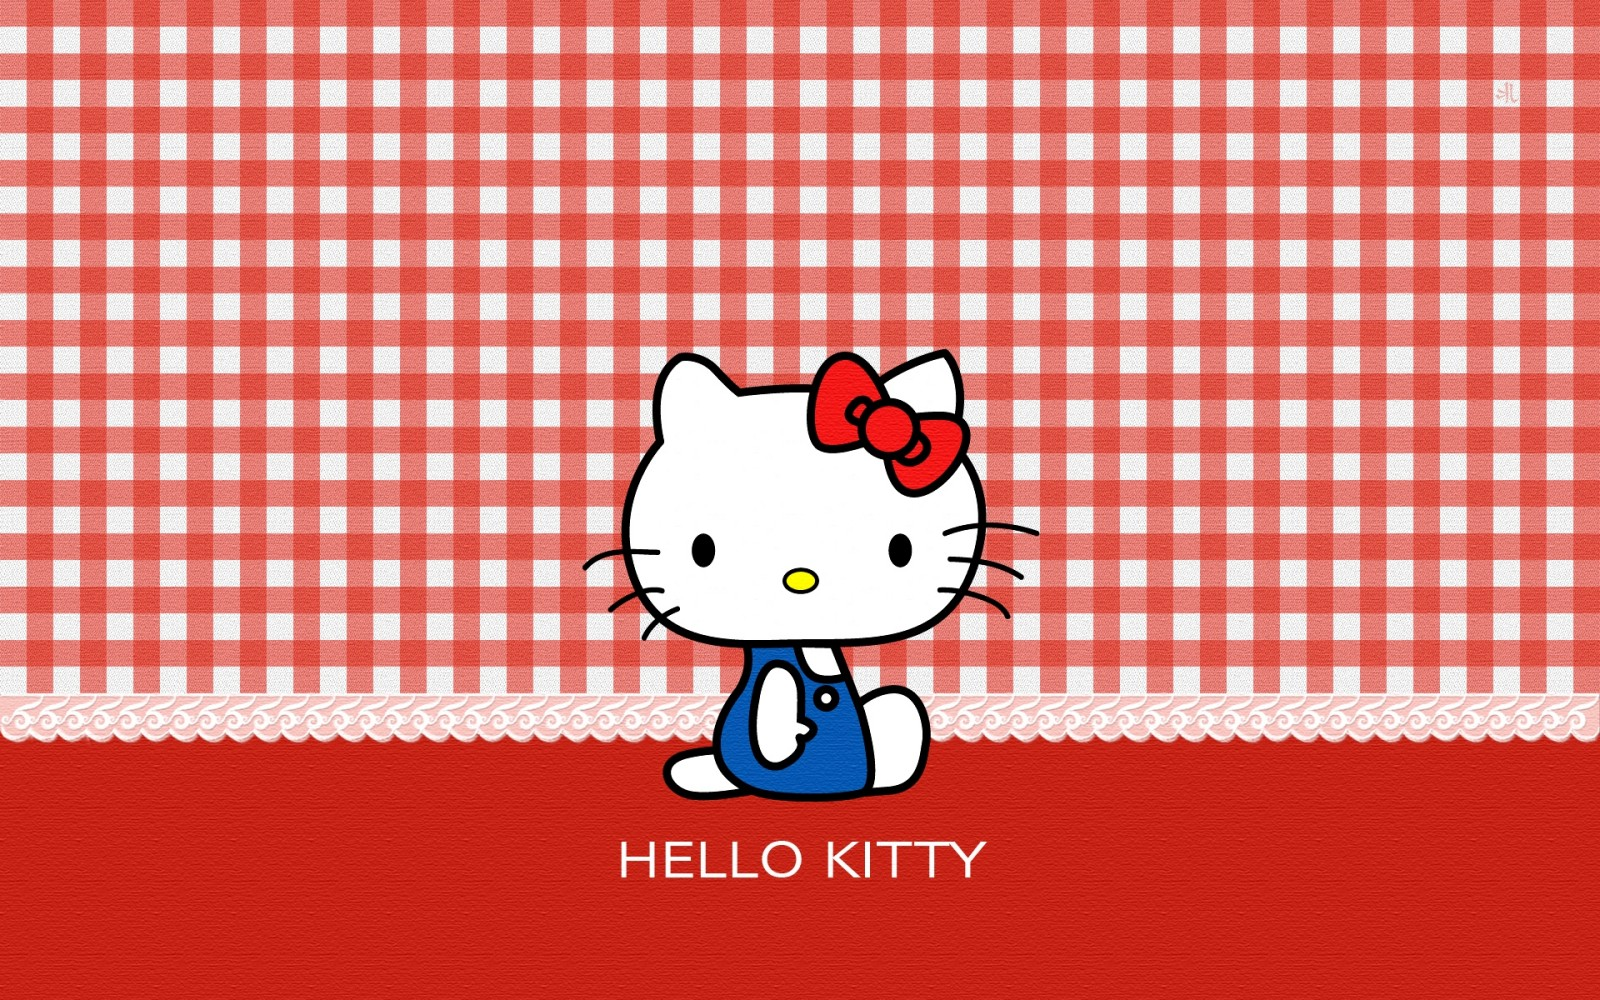 Best Wallpaper Hello Kitty 1080p - h41  Snapshot_725188.jpg